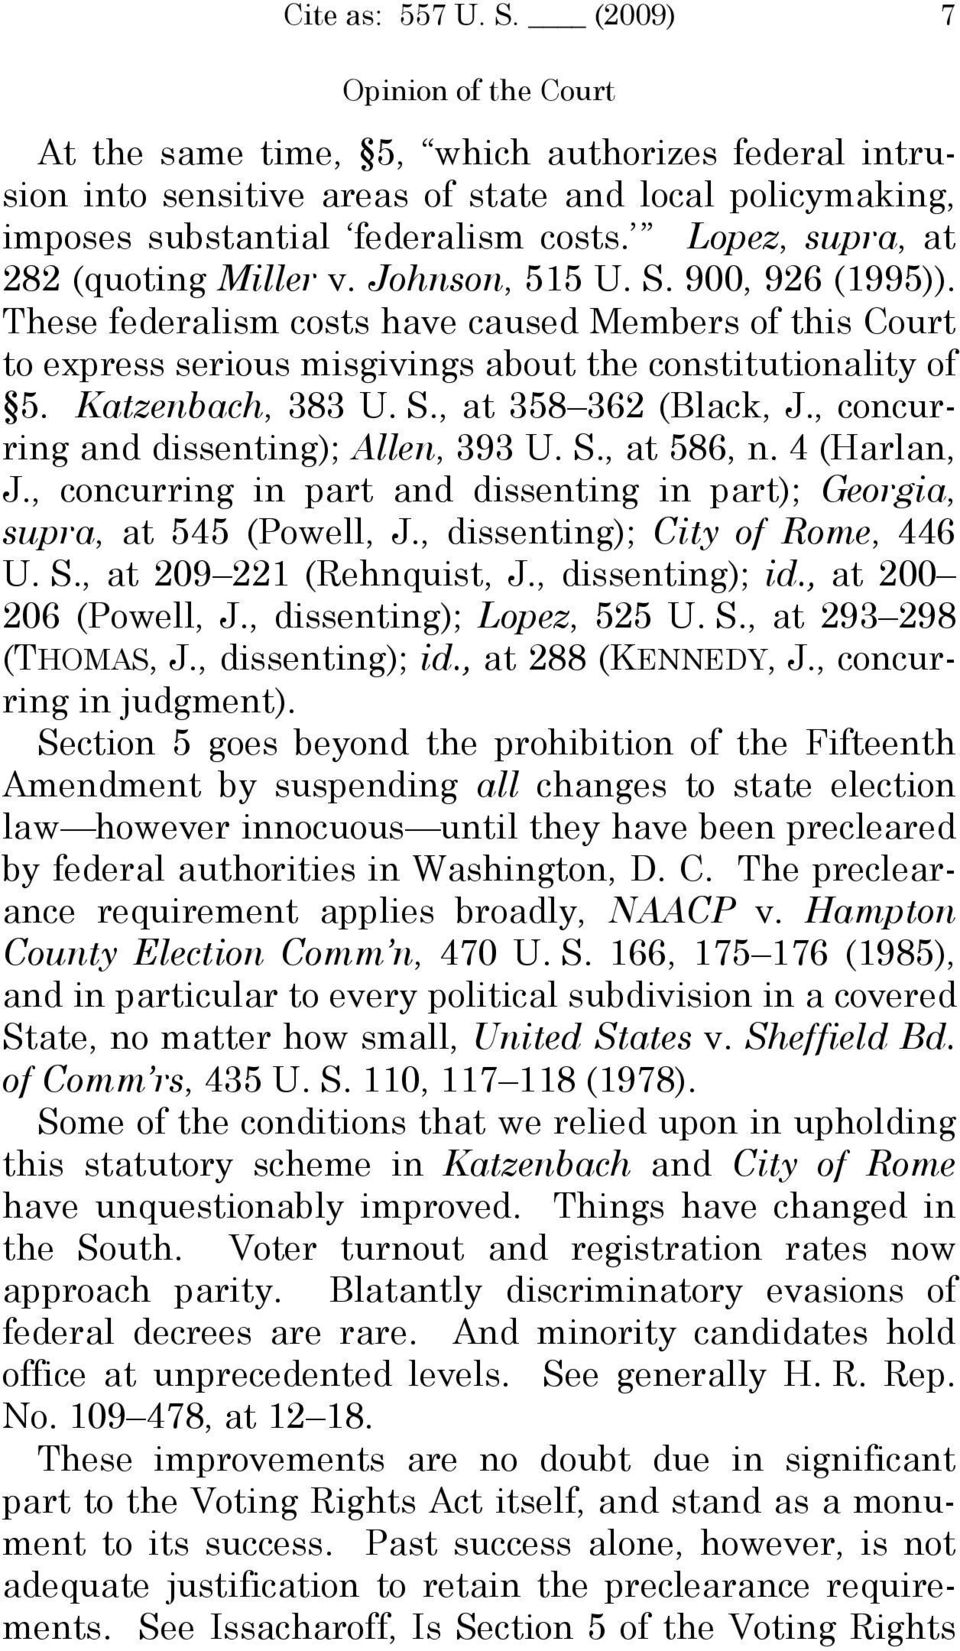 Katzenbach, 383 U. S., at 358 362 (Black, J., concurring and dissenting); Allen, 393 U. S., at 586, n. 4 (Harlan, J., concurring in part and dissenting in part); Georgia, supra, at 545 (Powell, J.